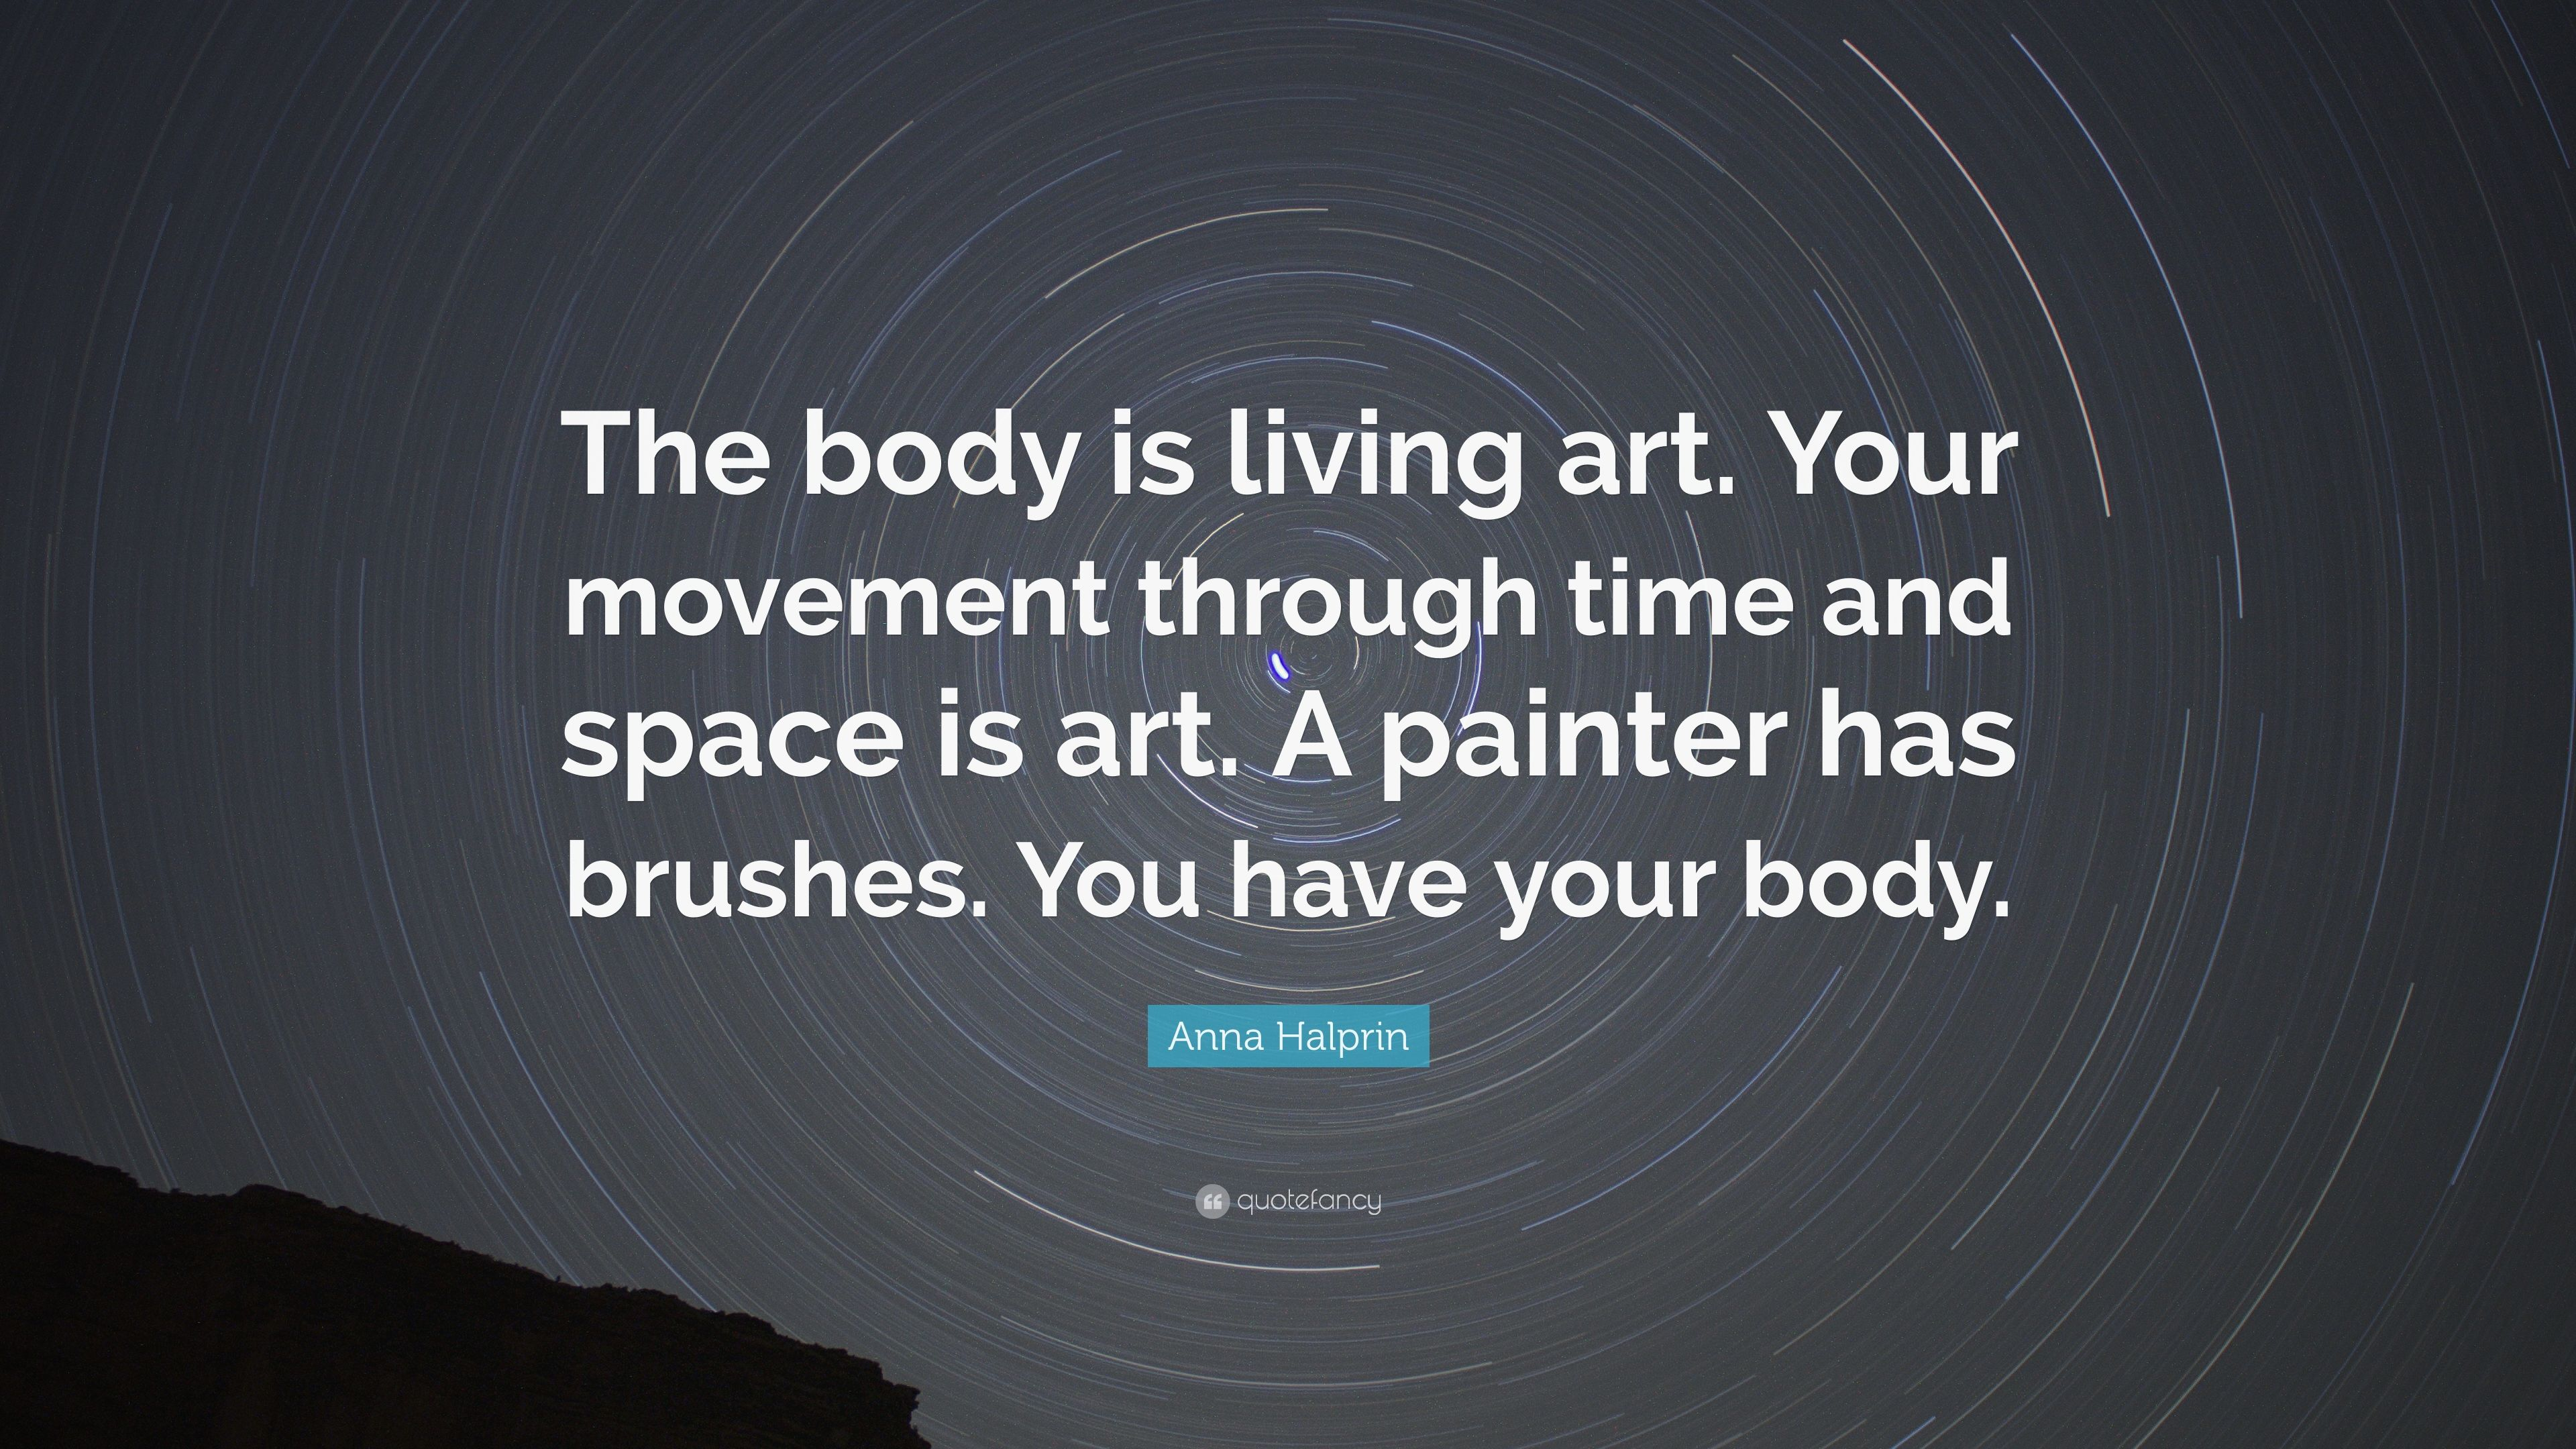 Anna Halprin Quote The Body Is Living Art Your Movement Through Time And Space Is Art A Painter Has Brushes You Have Your Body 7 Wallpapers Quotefancy